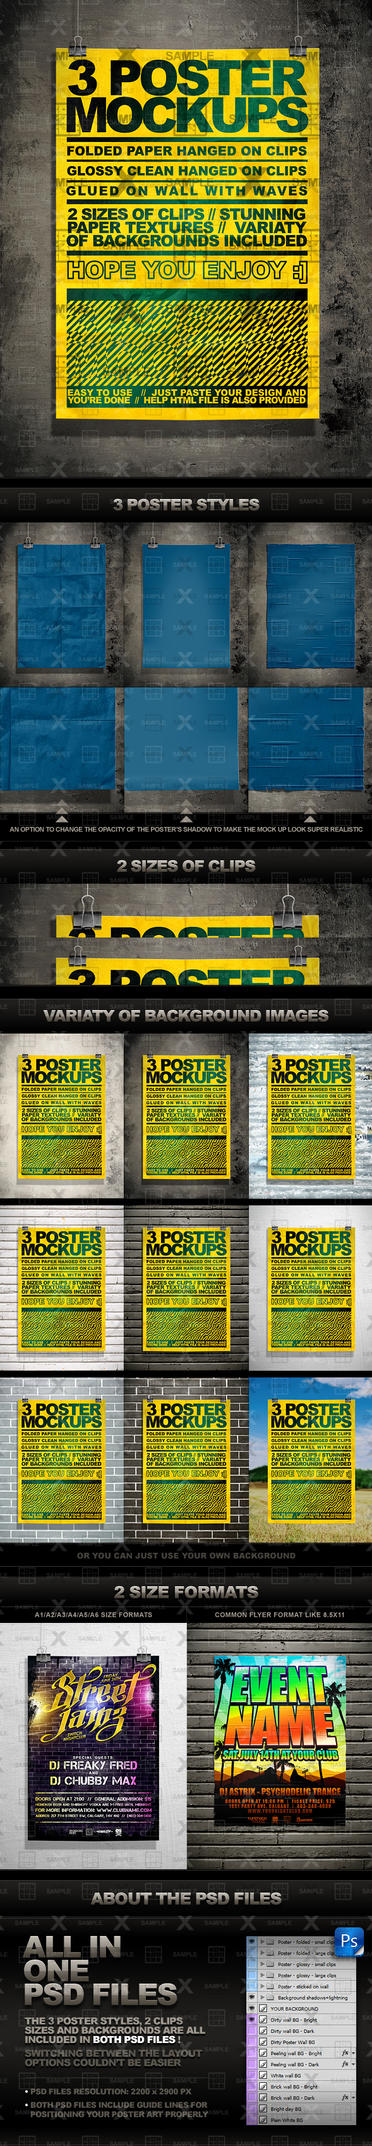 Poster Mock Up Kit - 3 Unique Styles by kontrastt